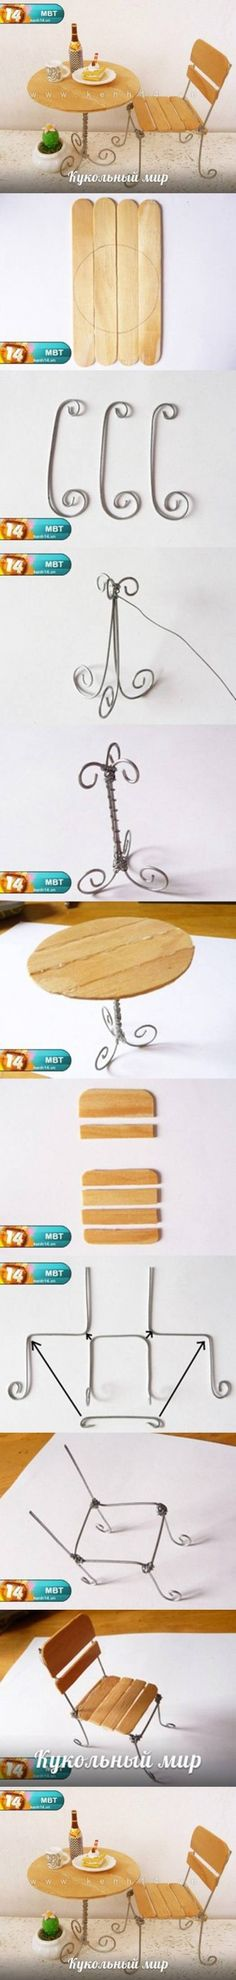 DIY Popsicle Stick Desk and Chair DIY Projects